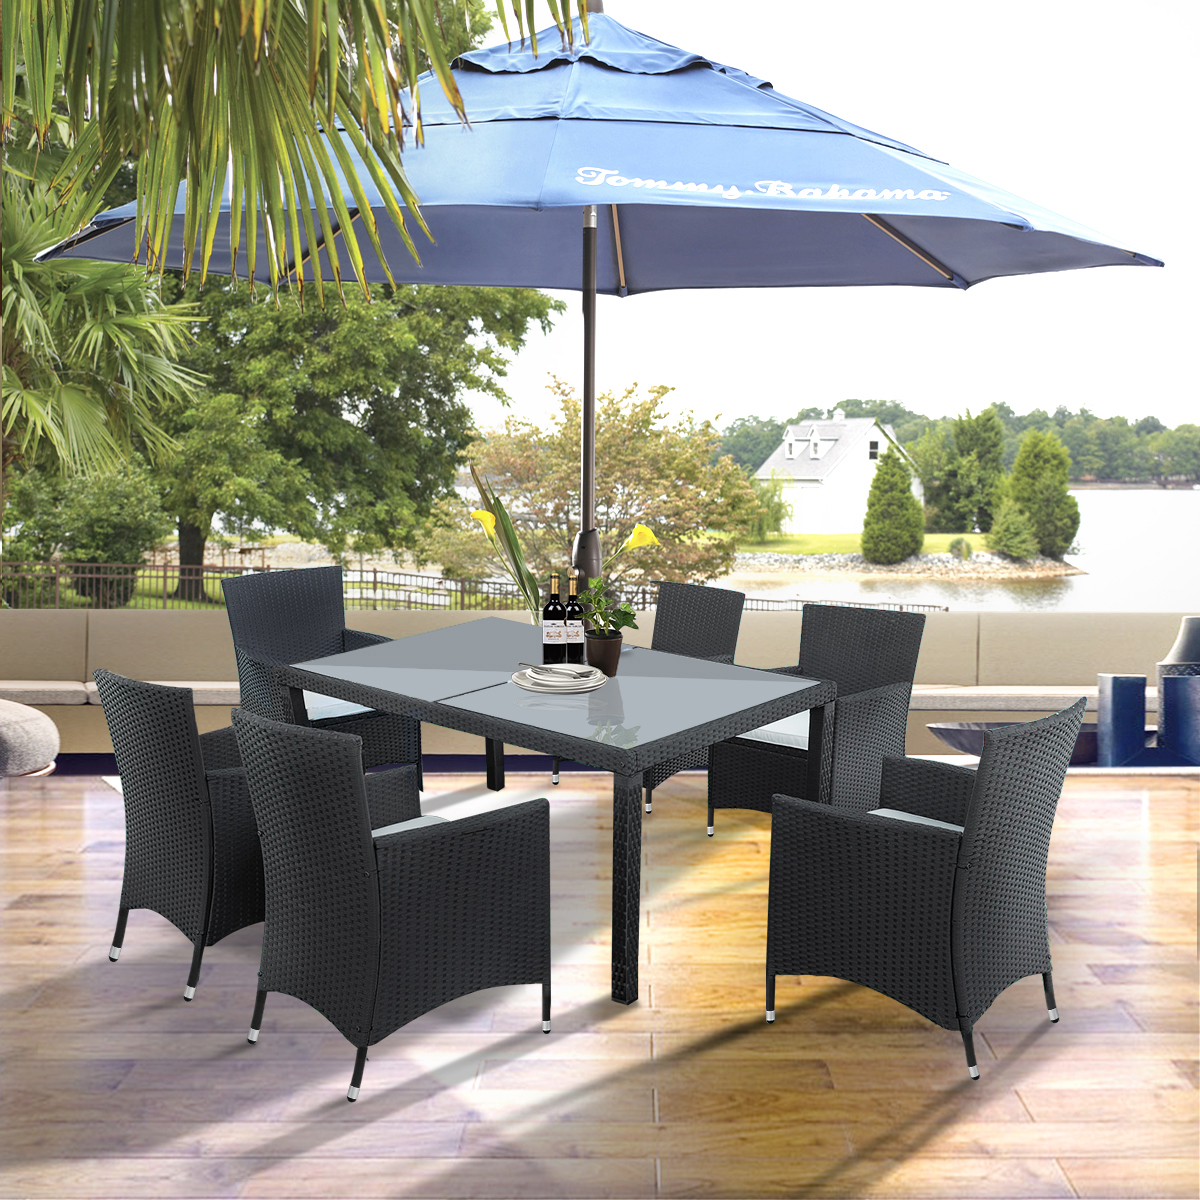 https www walmart com ip 7 piece outdoor patio dining set 6 rattan wicker chairs glass table all weathe rectangle sofa furniture set removable cushions backyard porch garden 480515483